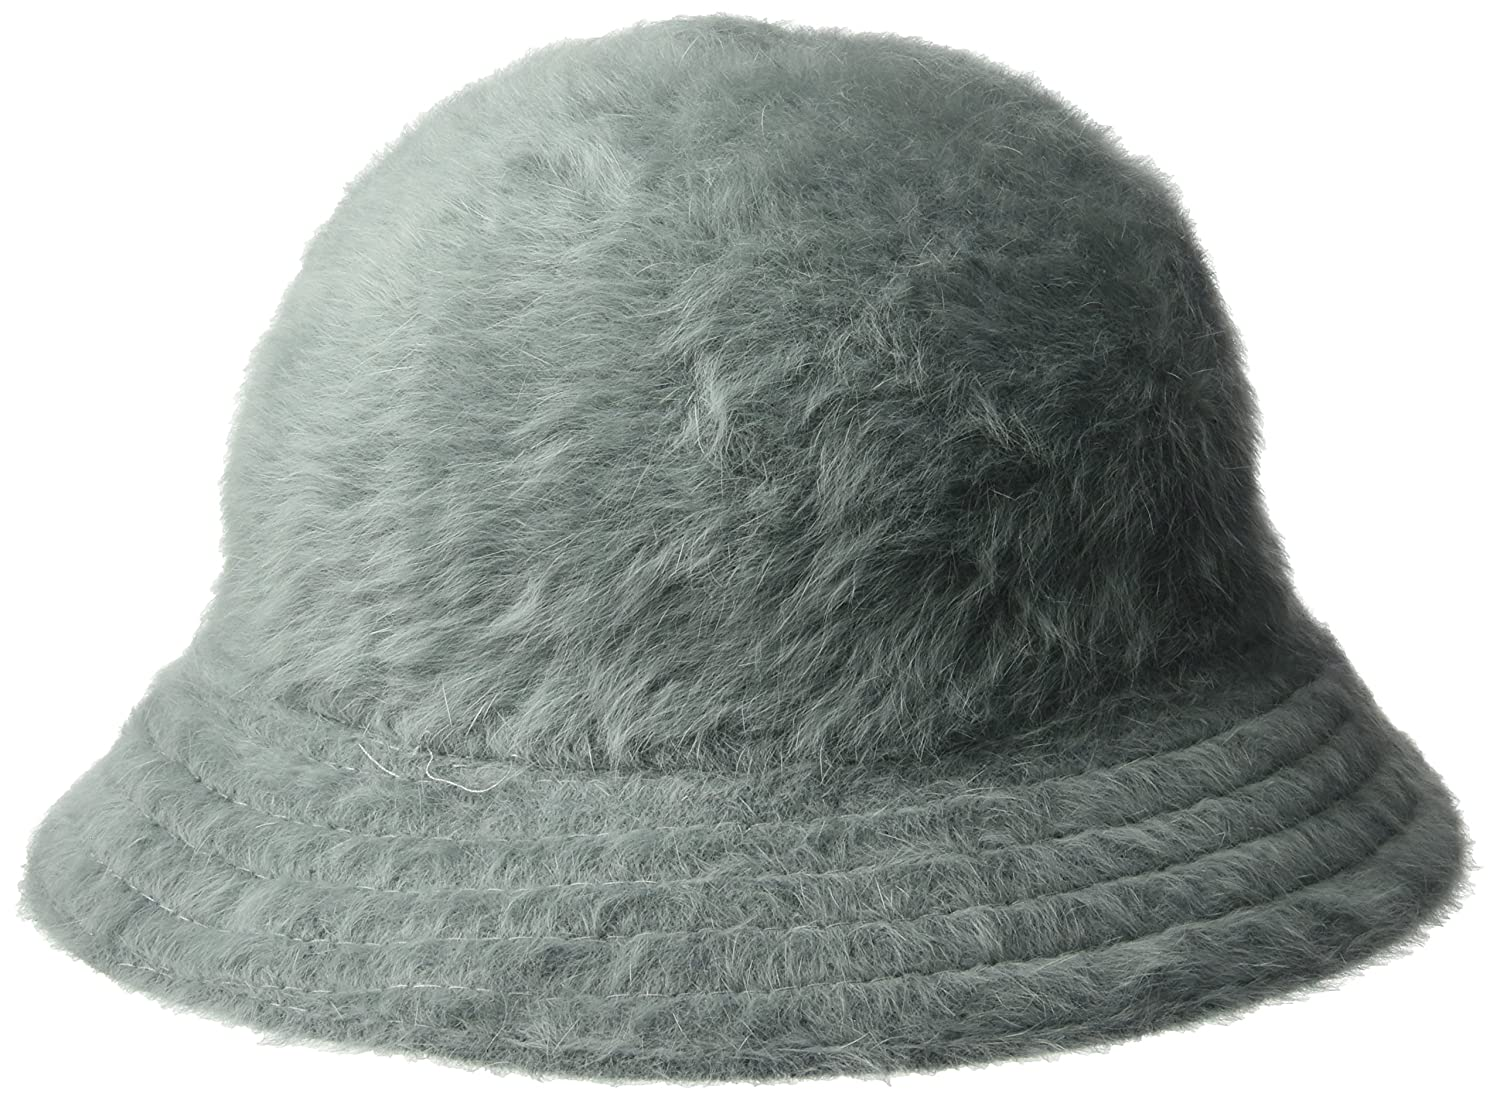 b503dfaa Kangol Unisex-Adults Furgora Casual Bucket Hat, Slate Grey, XL: Amazon.ca:  Clothing & Accessories